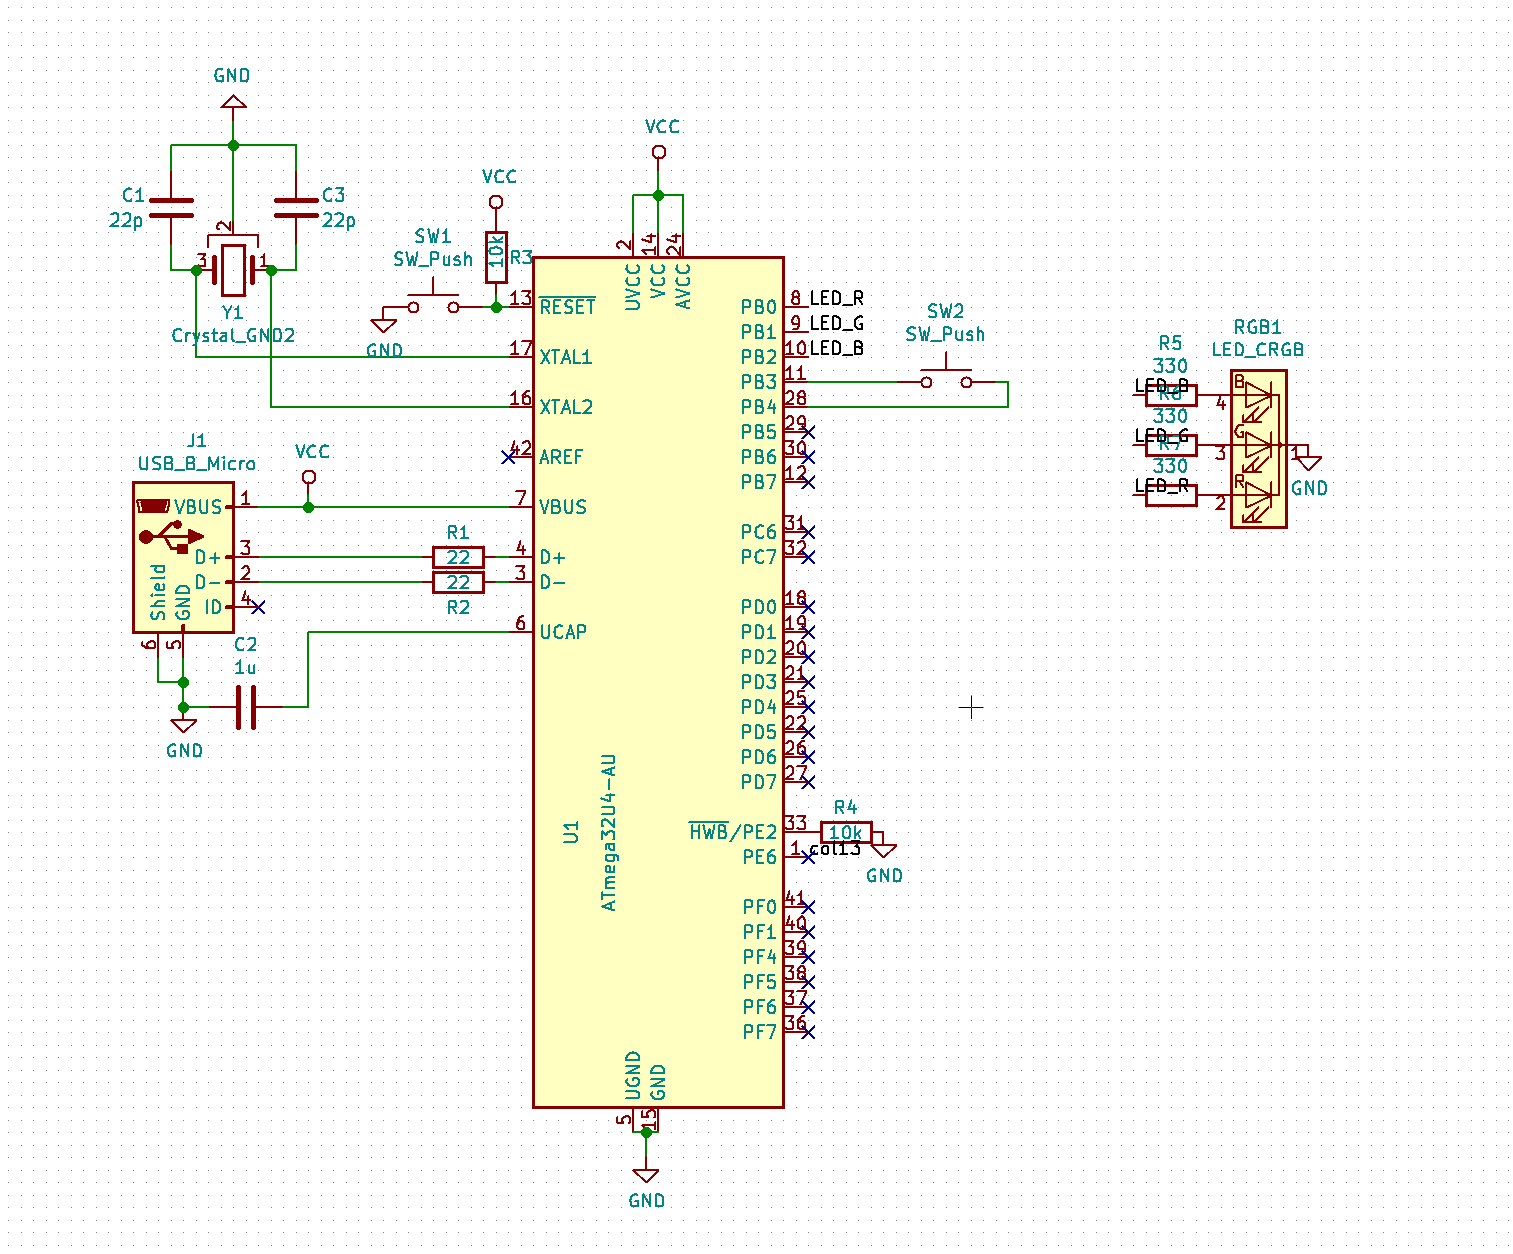 hight resolution of how can i program an atmega32u4 over usb with this schematic